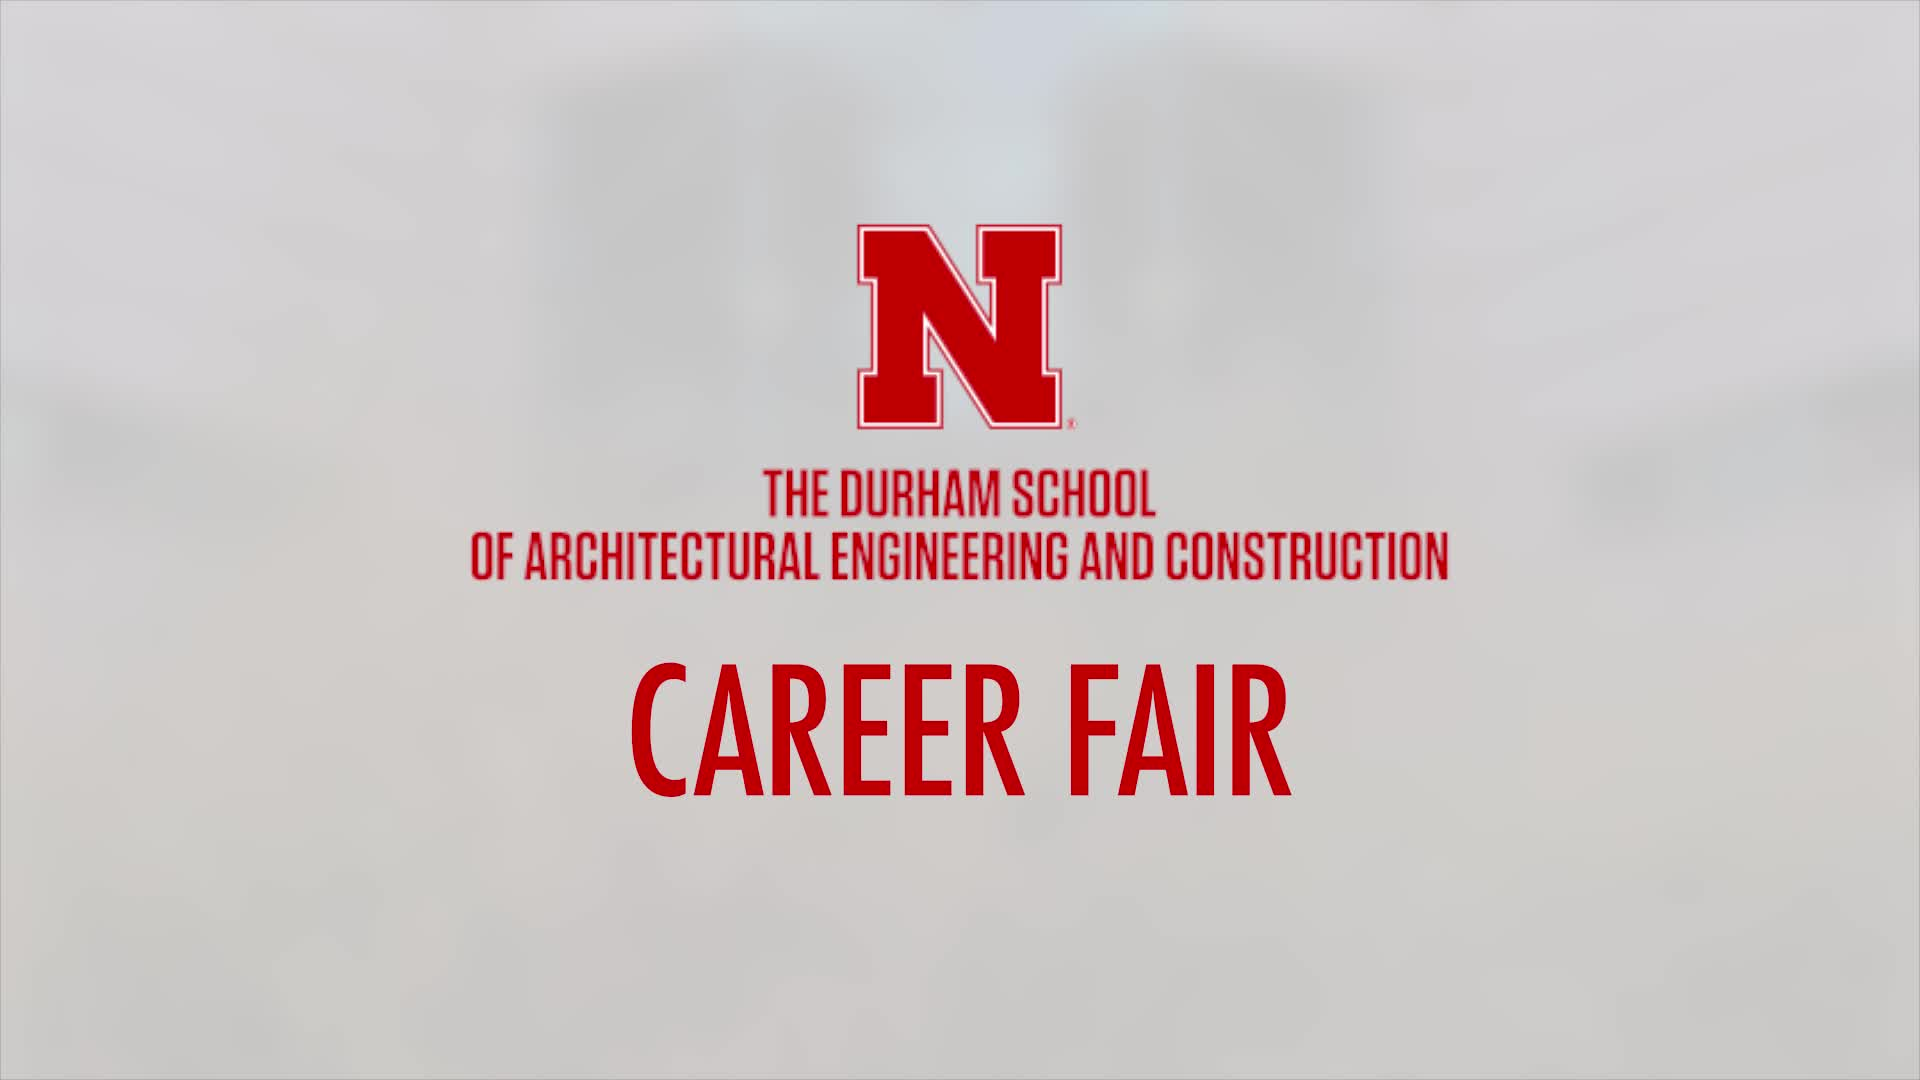 The Durham School Career Fair